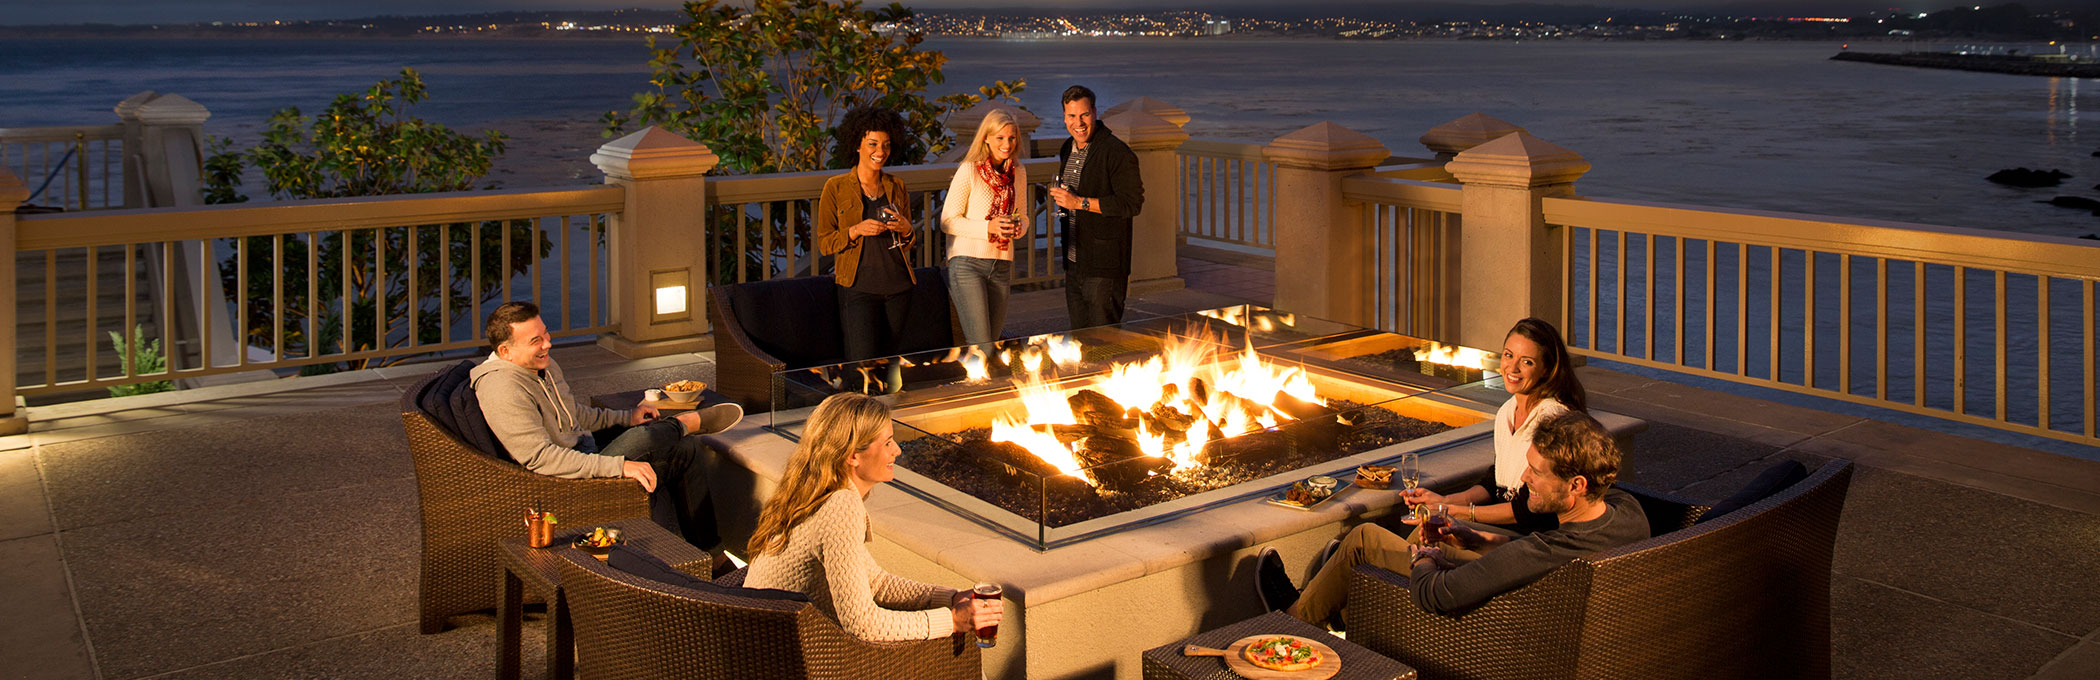 People around fire pit with ocean view